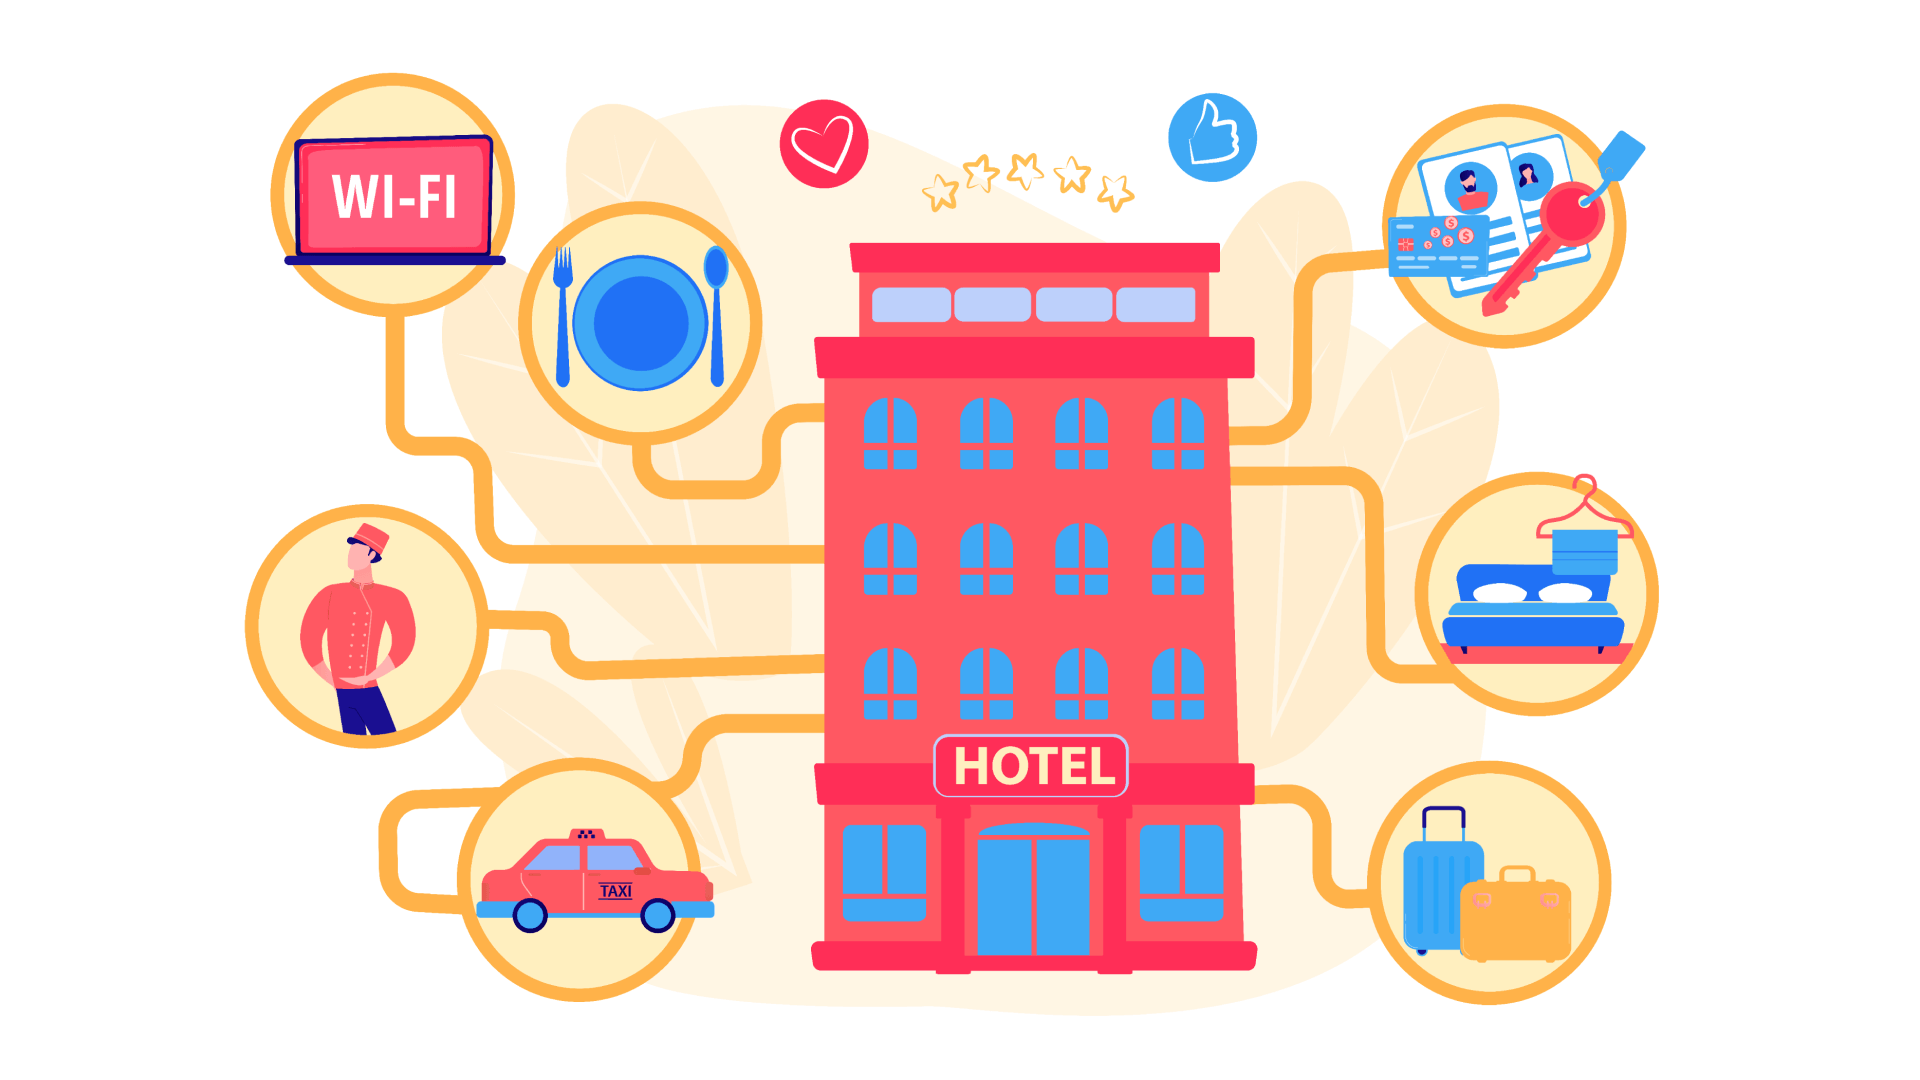 Wow hospitality trends of 2022 that may completely change the way we view this market.